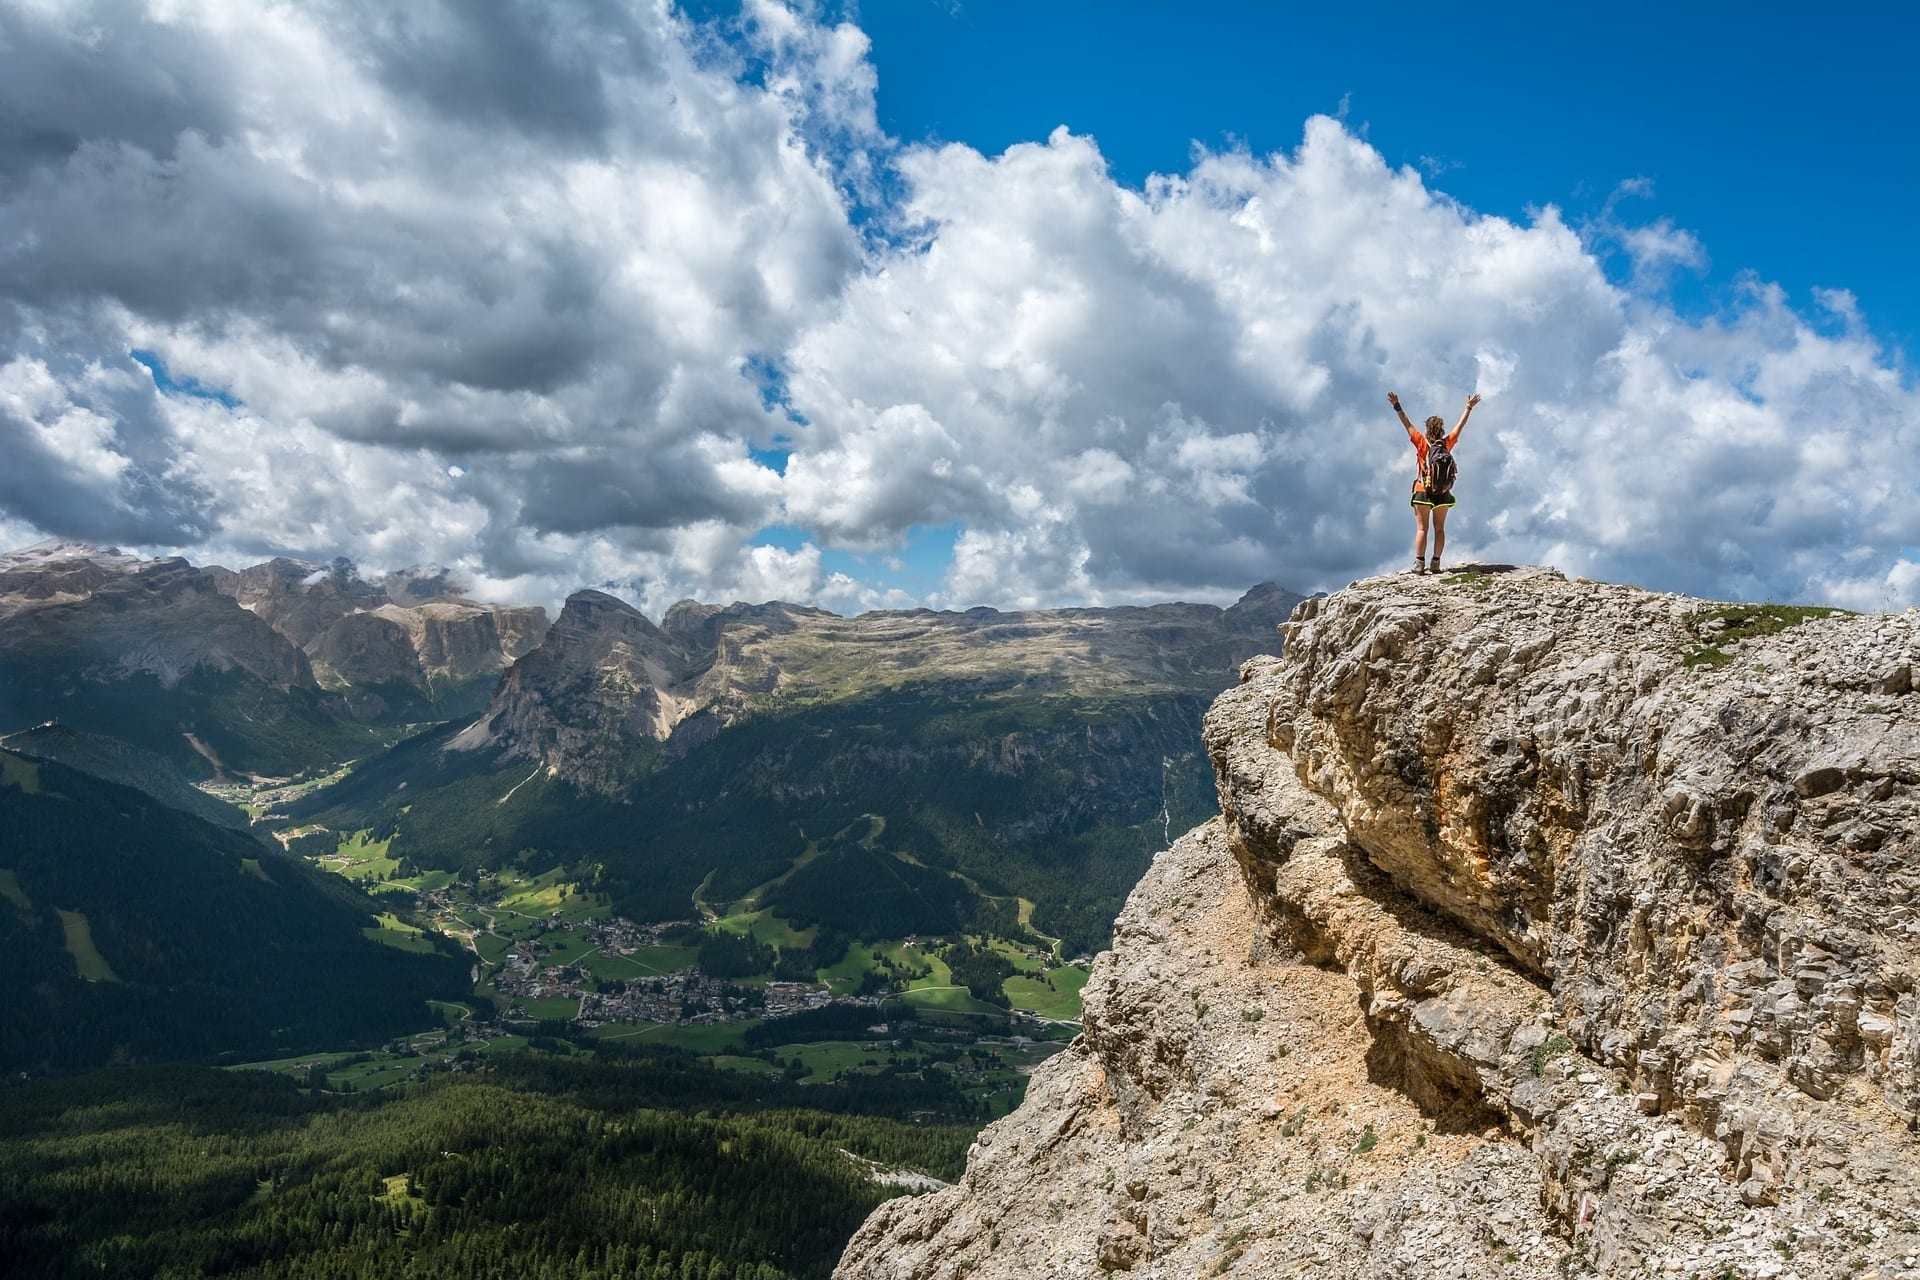 Someone standing at the top of a mountain, arms raised in triumph.